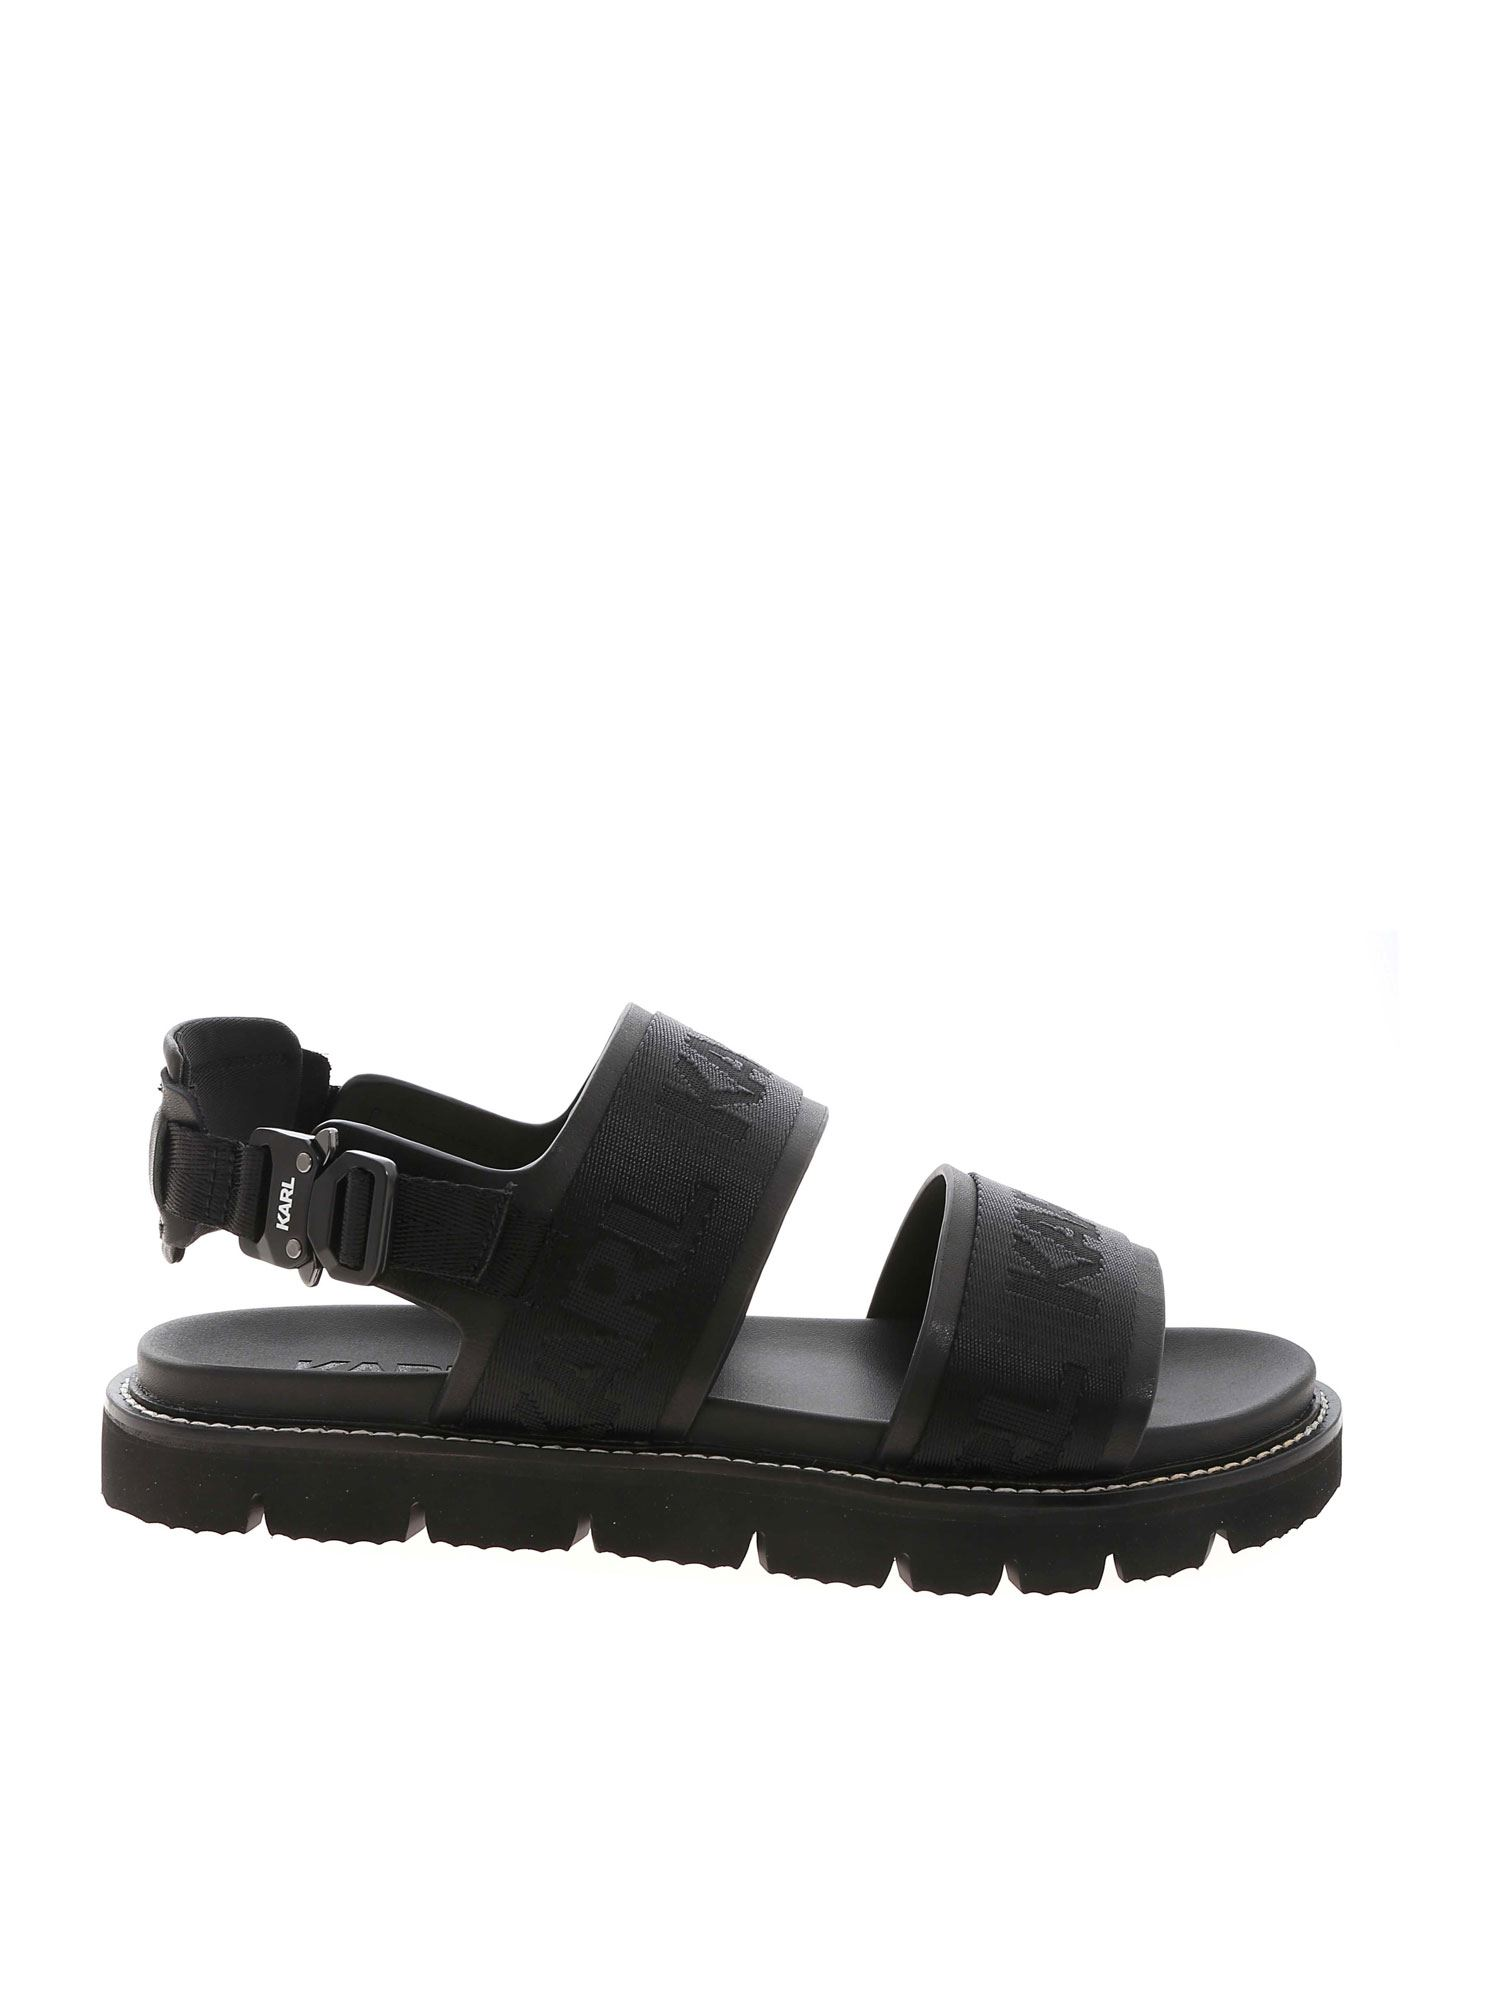 Karl Lagerfeld KASTOR SANDALS IN BLACK